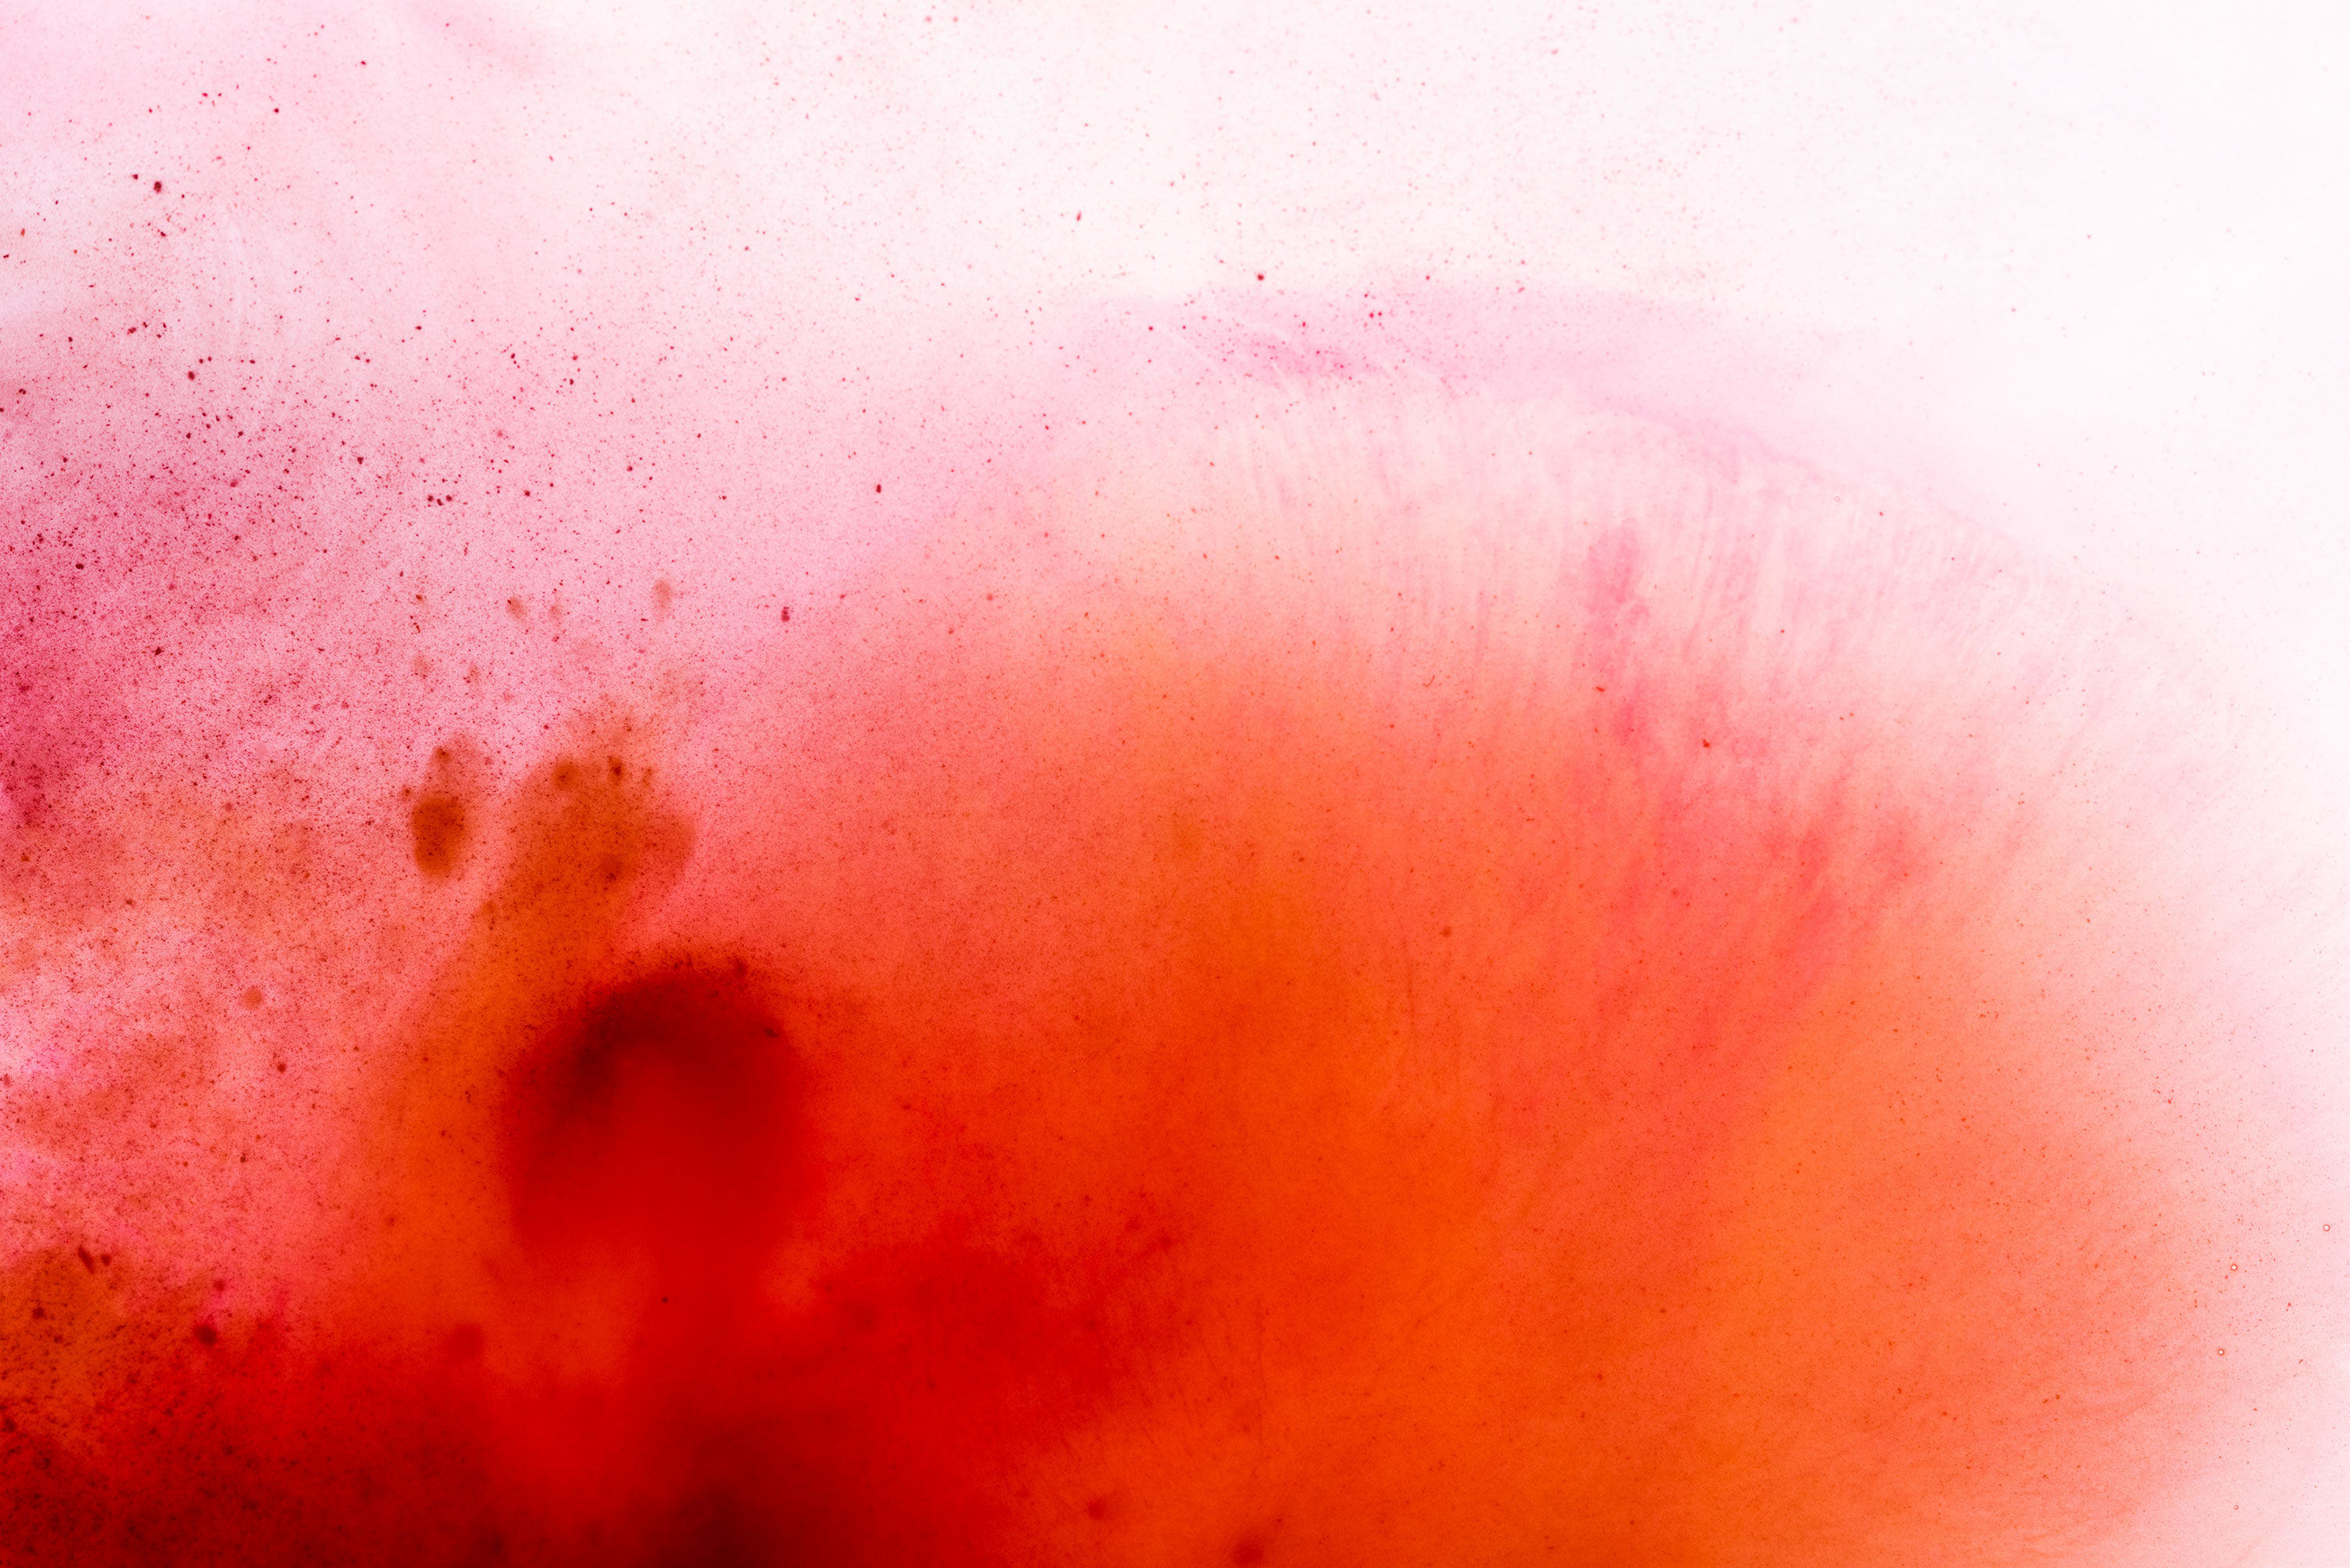 Minimal art photography made of orange and red watercolour. Image by Jennifer Esseiva.